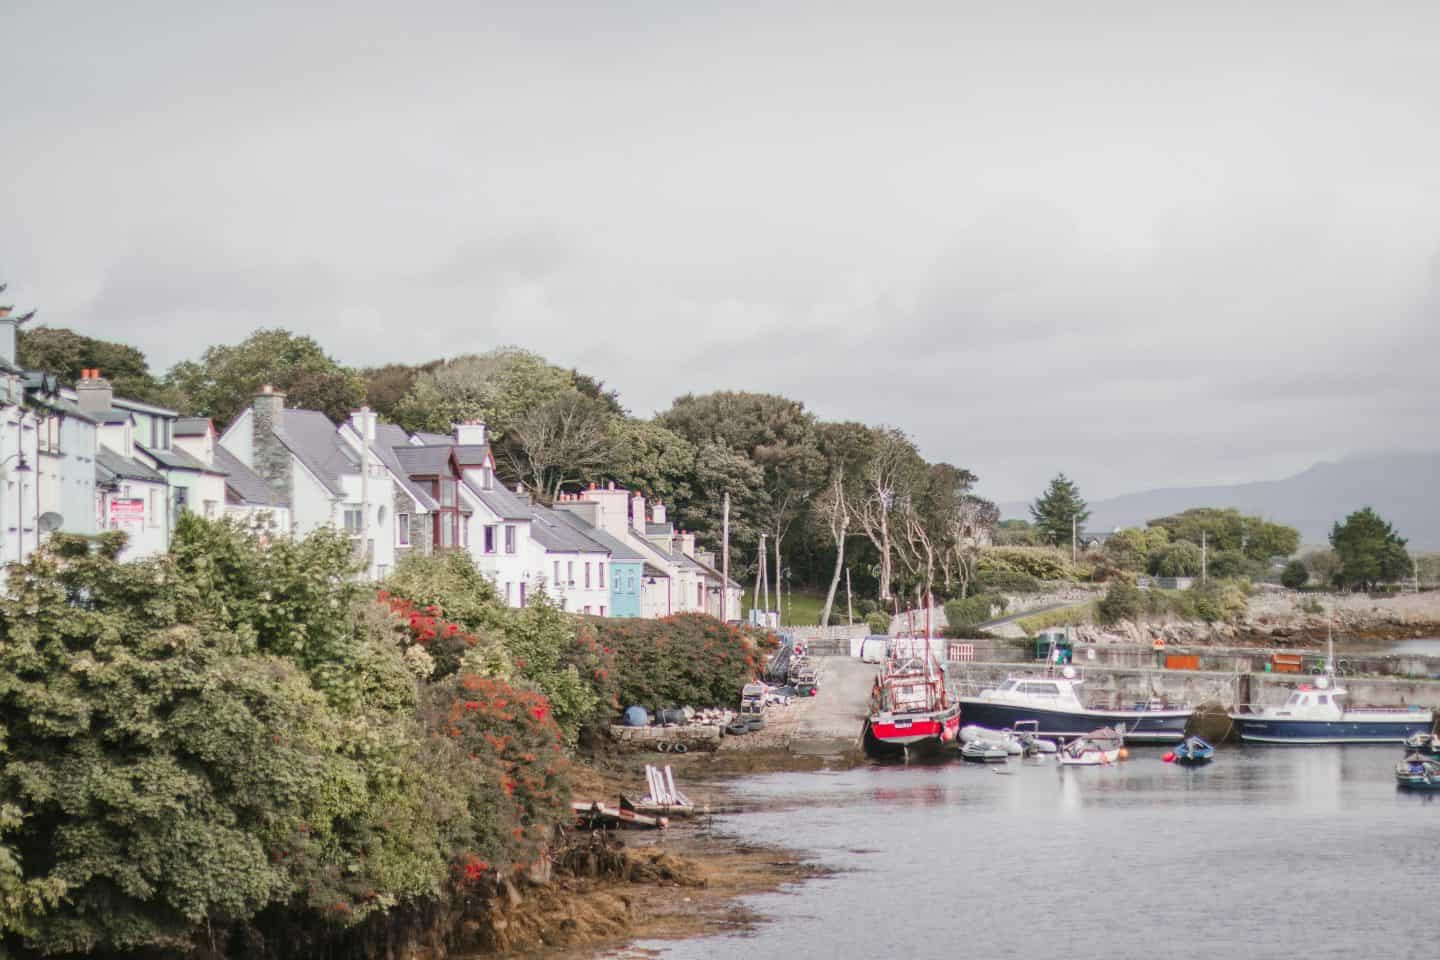 Roundstone Village is a cute town in Ireland